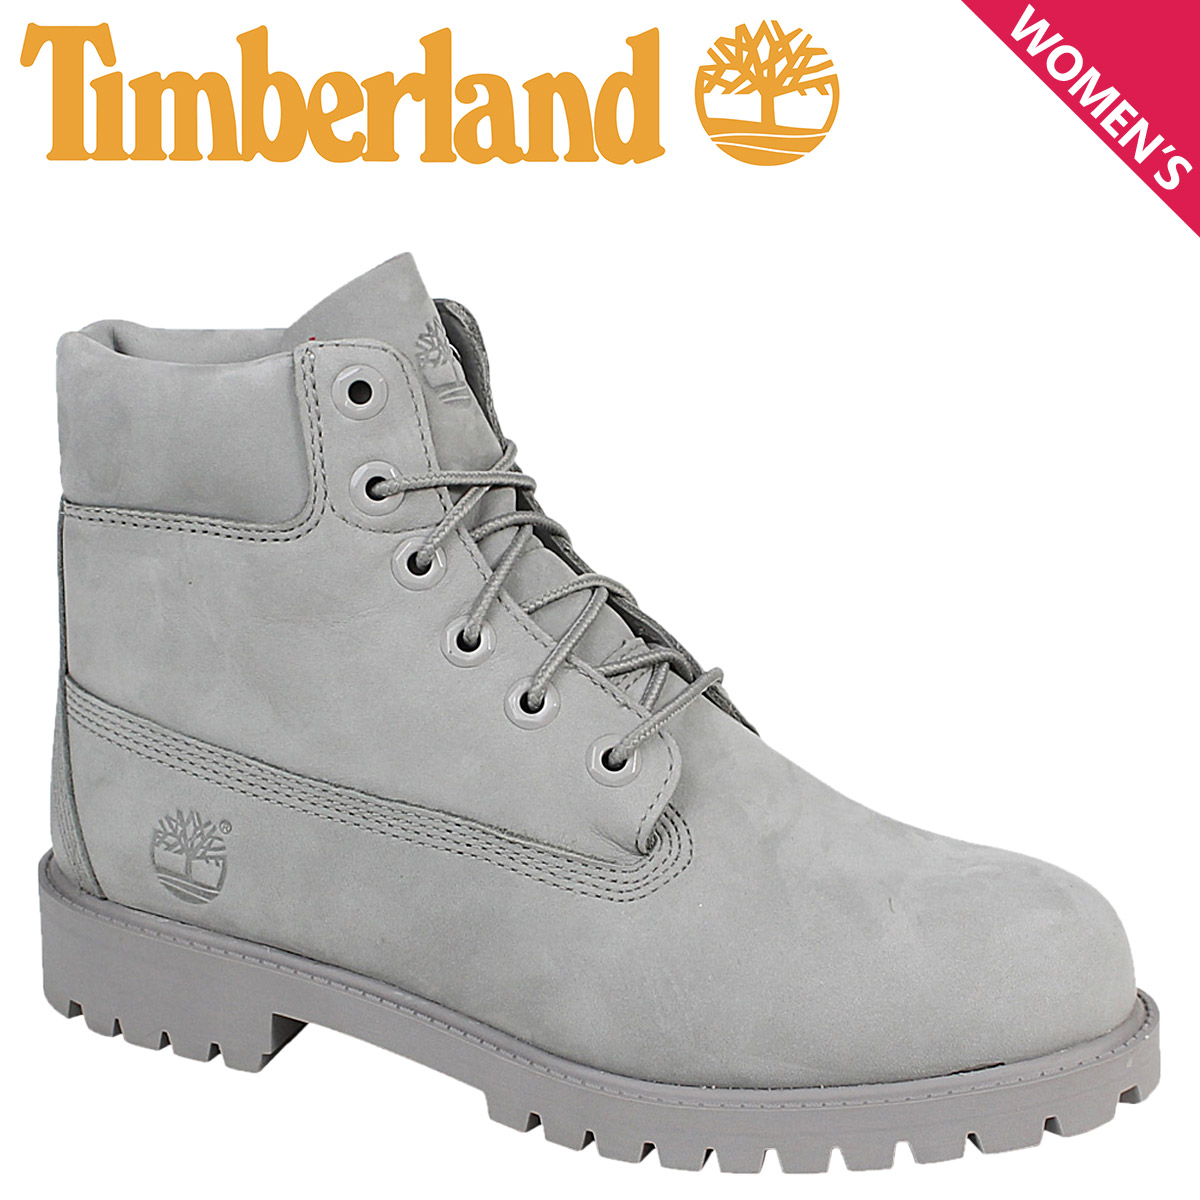 345a7edb641a  SOLD OUT  Women s Timberland Timberland 6 INCHI 6 inch premium boots  JUNIOR 6-INCH PREMIUM WATERPROOF BOOTS A172F W wise waterproof grey